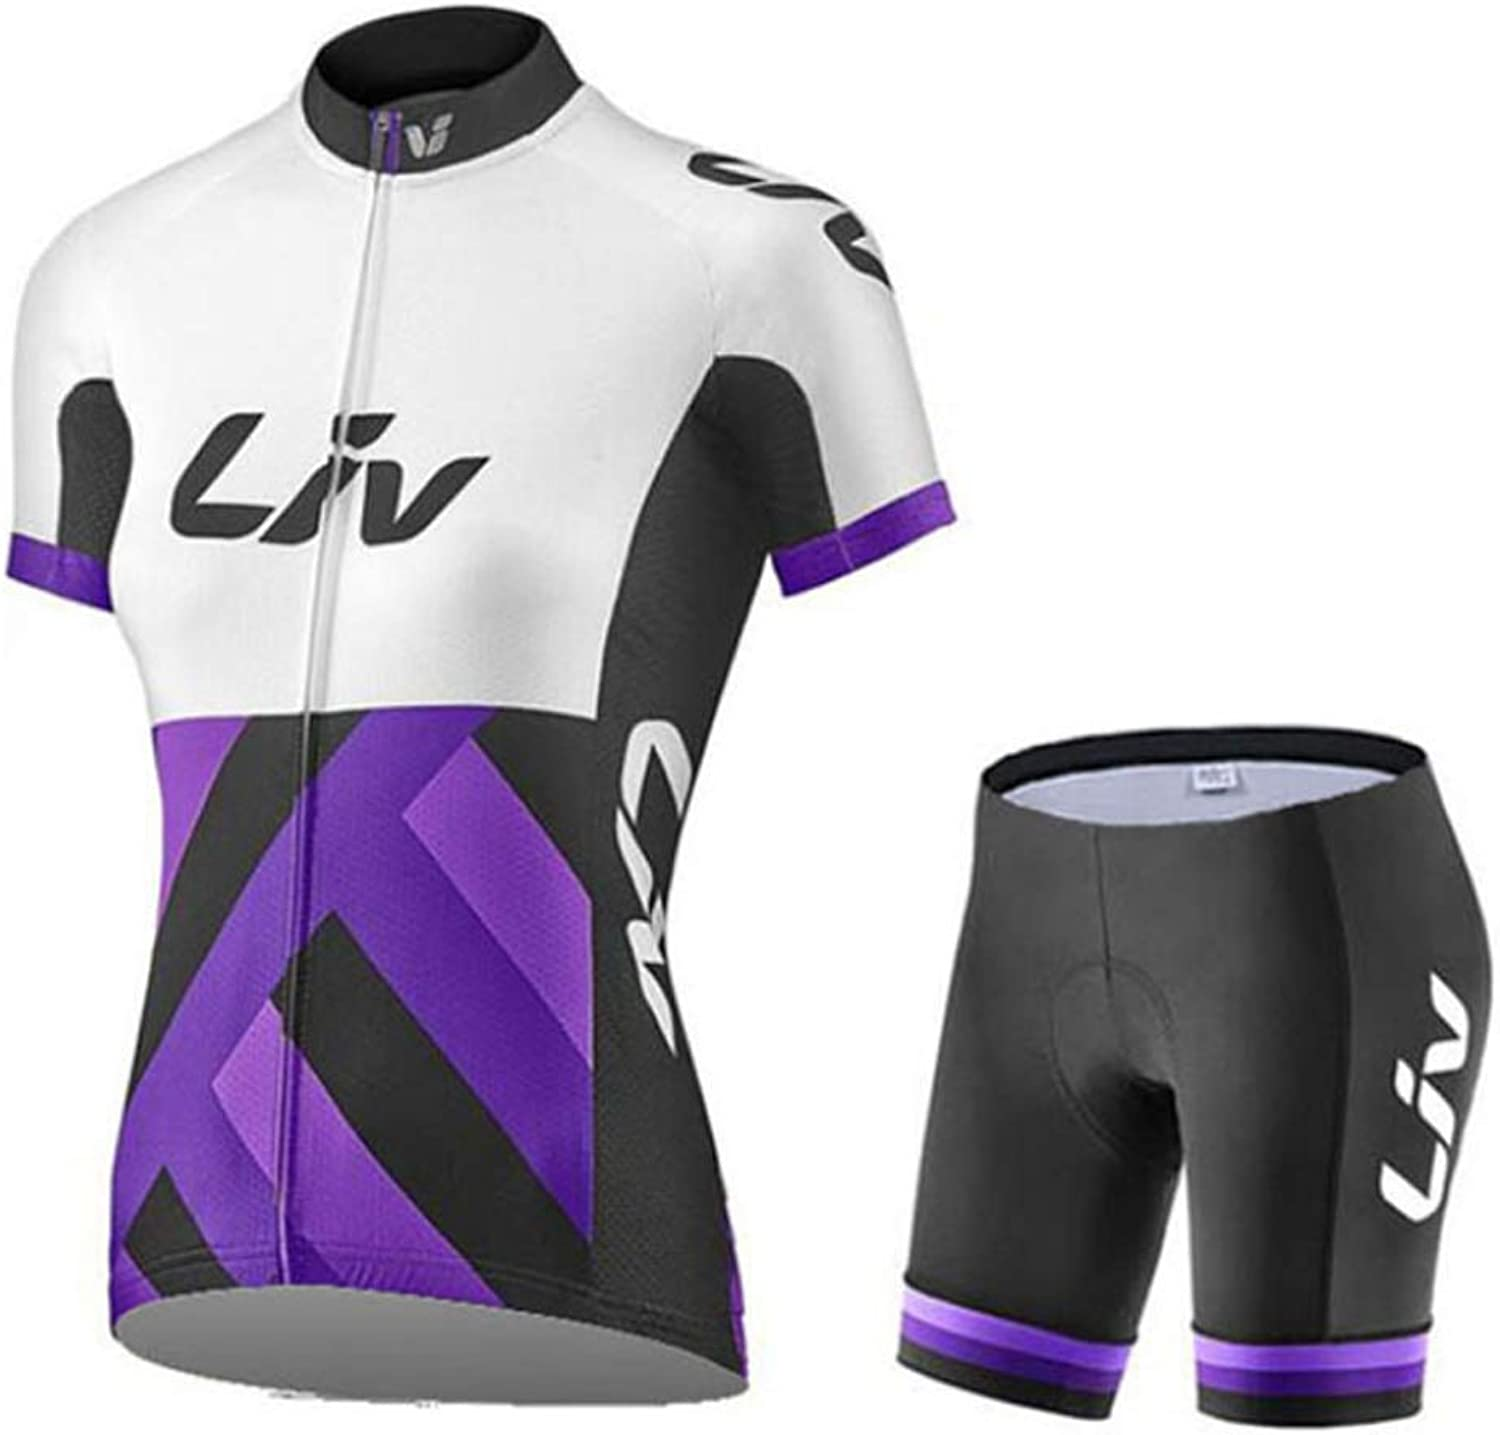 Cycling jerseys Women Biking Shirts Team Bike Clothing Bicycle Jacket Set